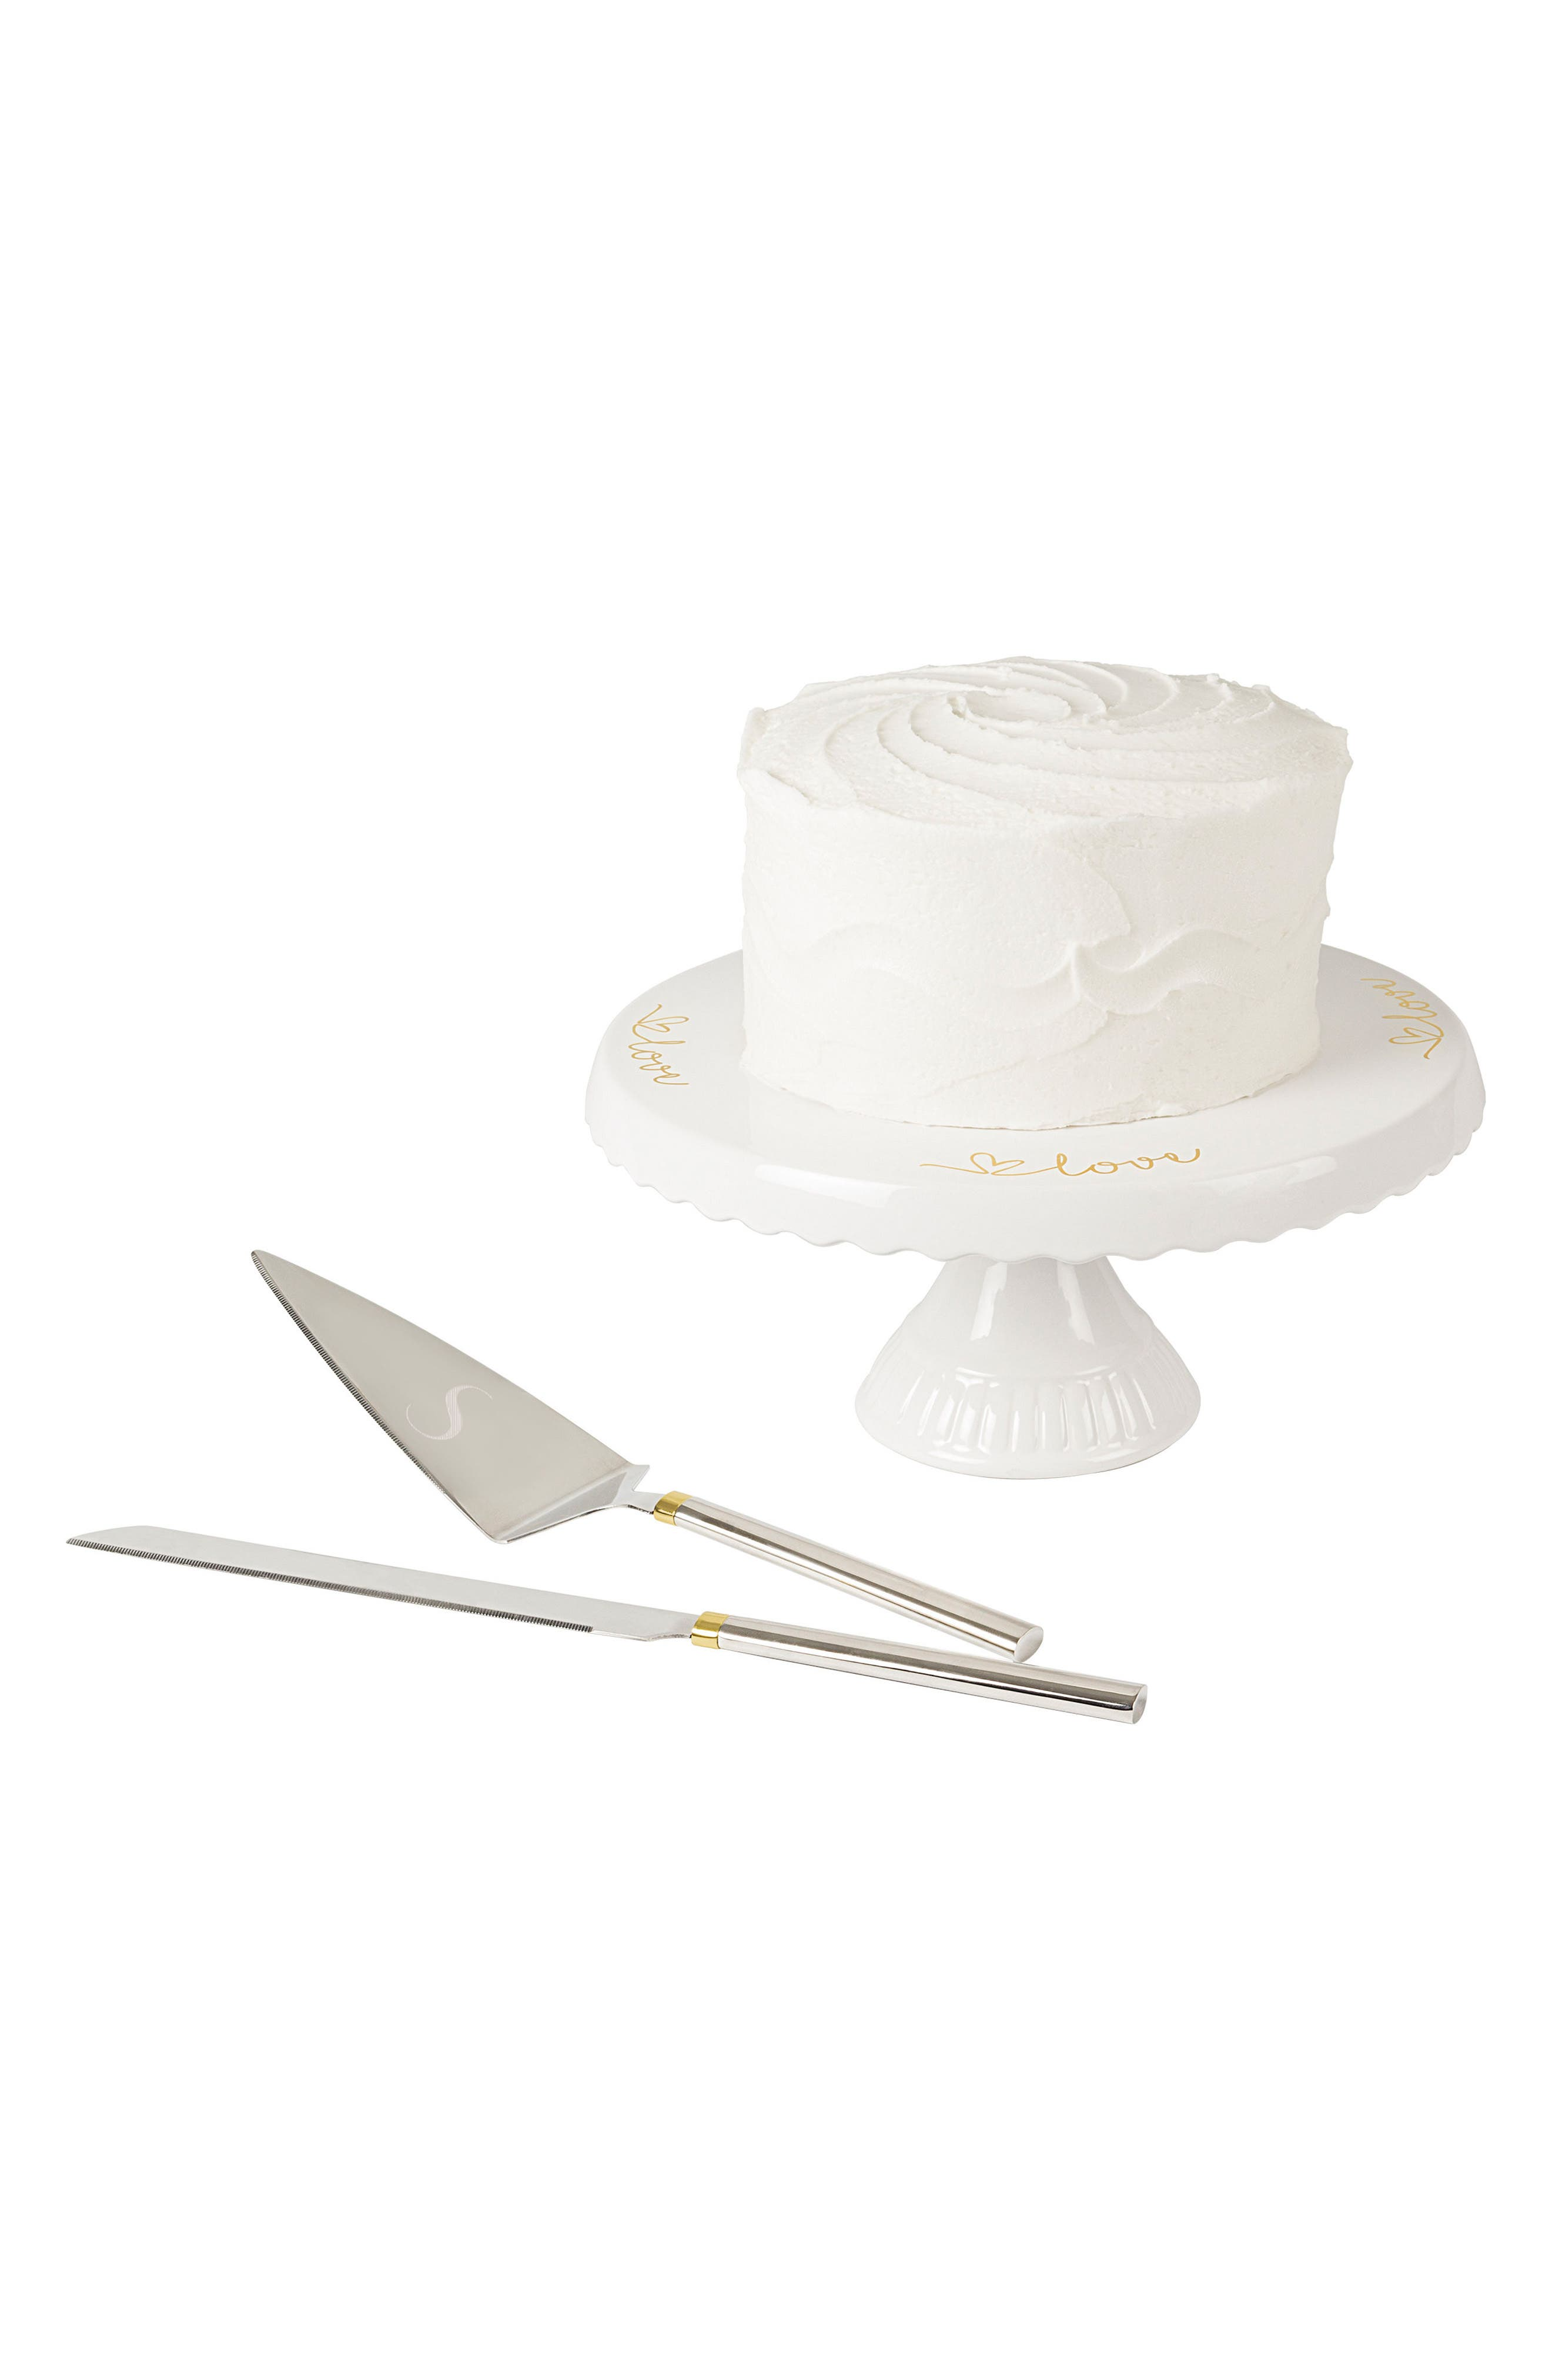 Love Monogram Cake Stand & Server Set,                             Main thumbnail 20, color,